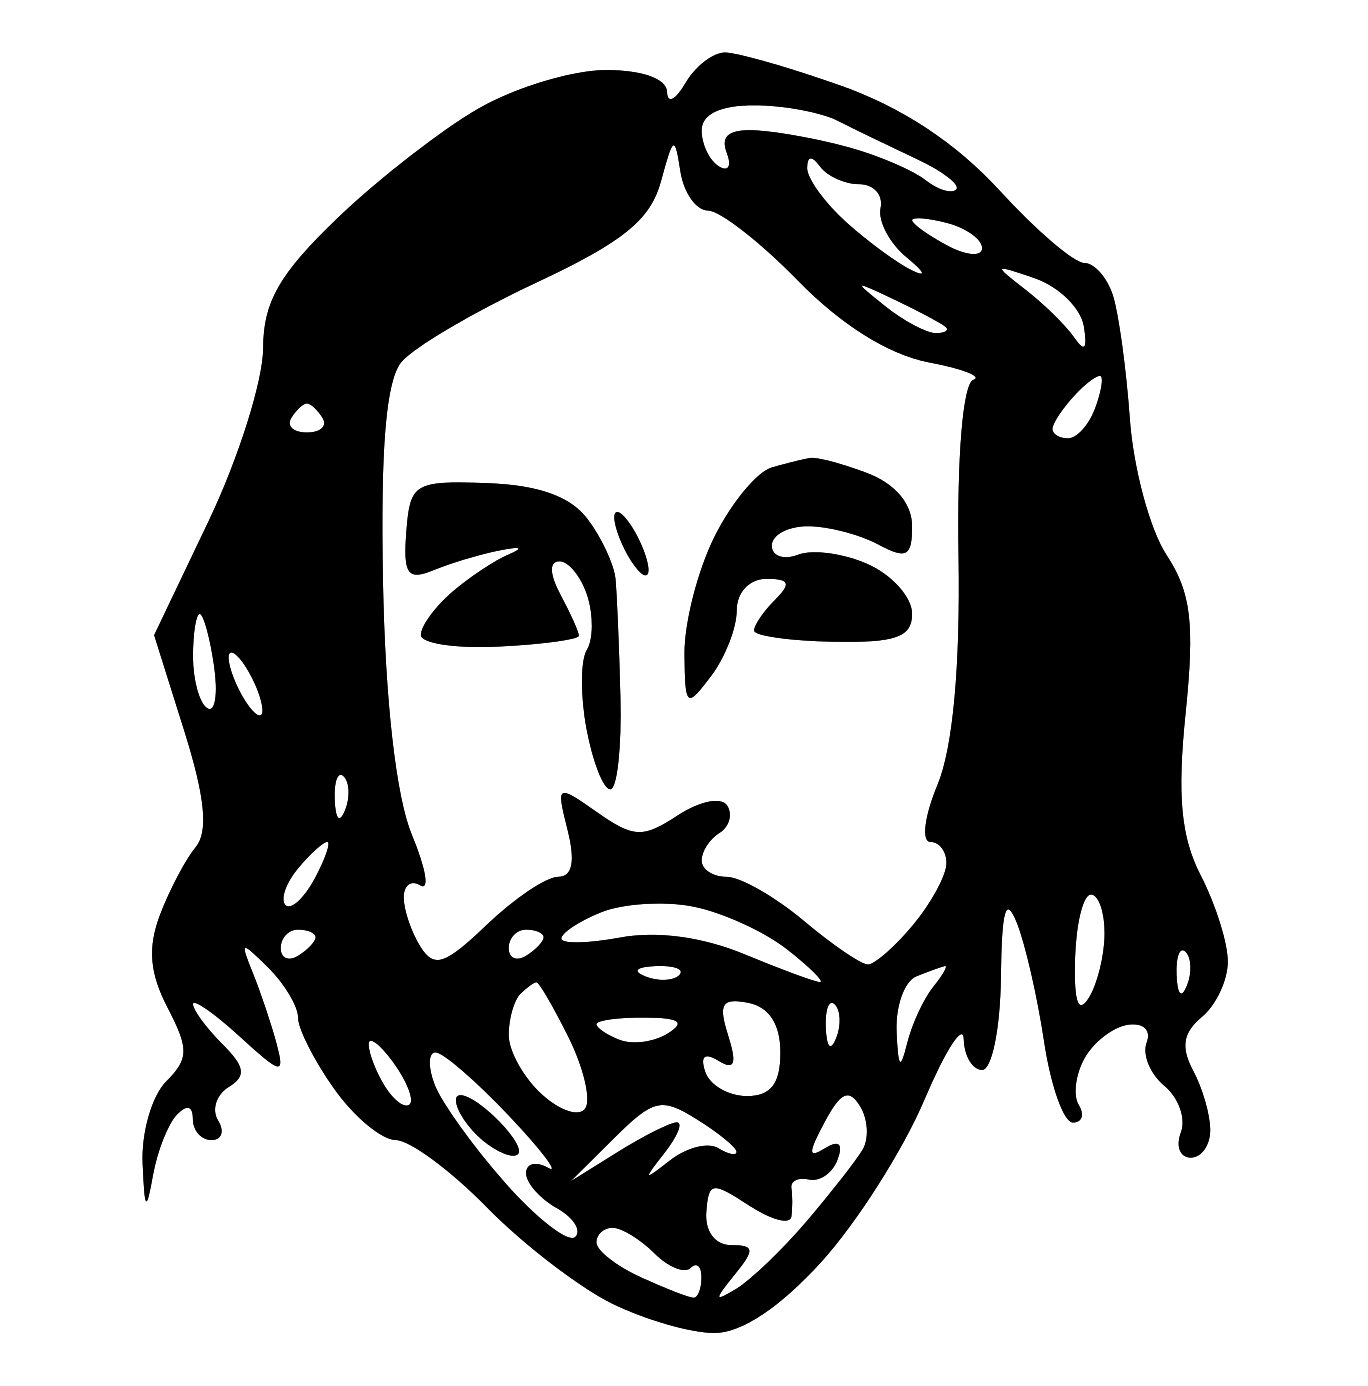 Super serious jesus face clipart png black and white library Free Jesus Clipart, Download Free Clip Art, Free Clip Art on ... png black and white library